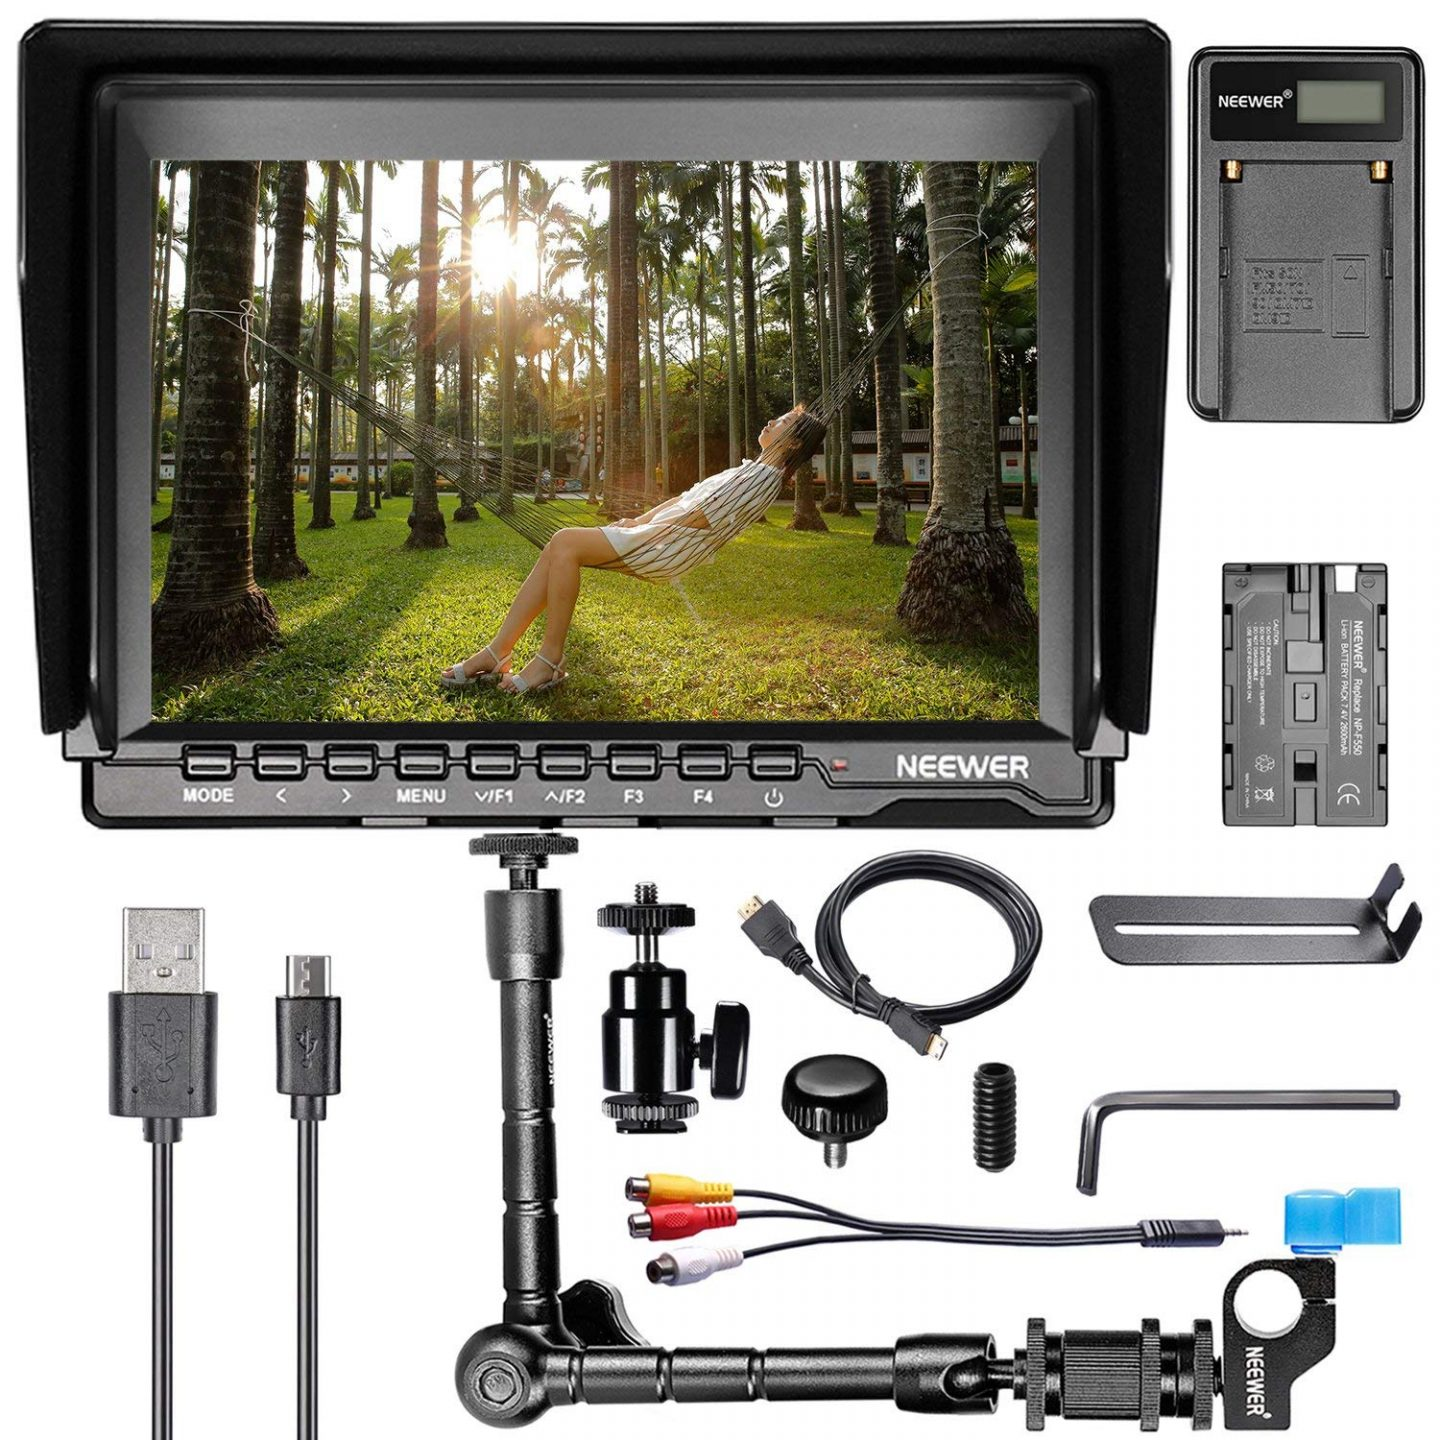 Camera kit and Monitor from Amazon